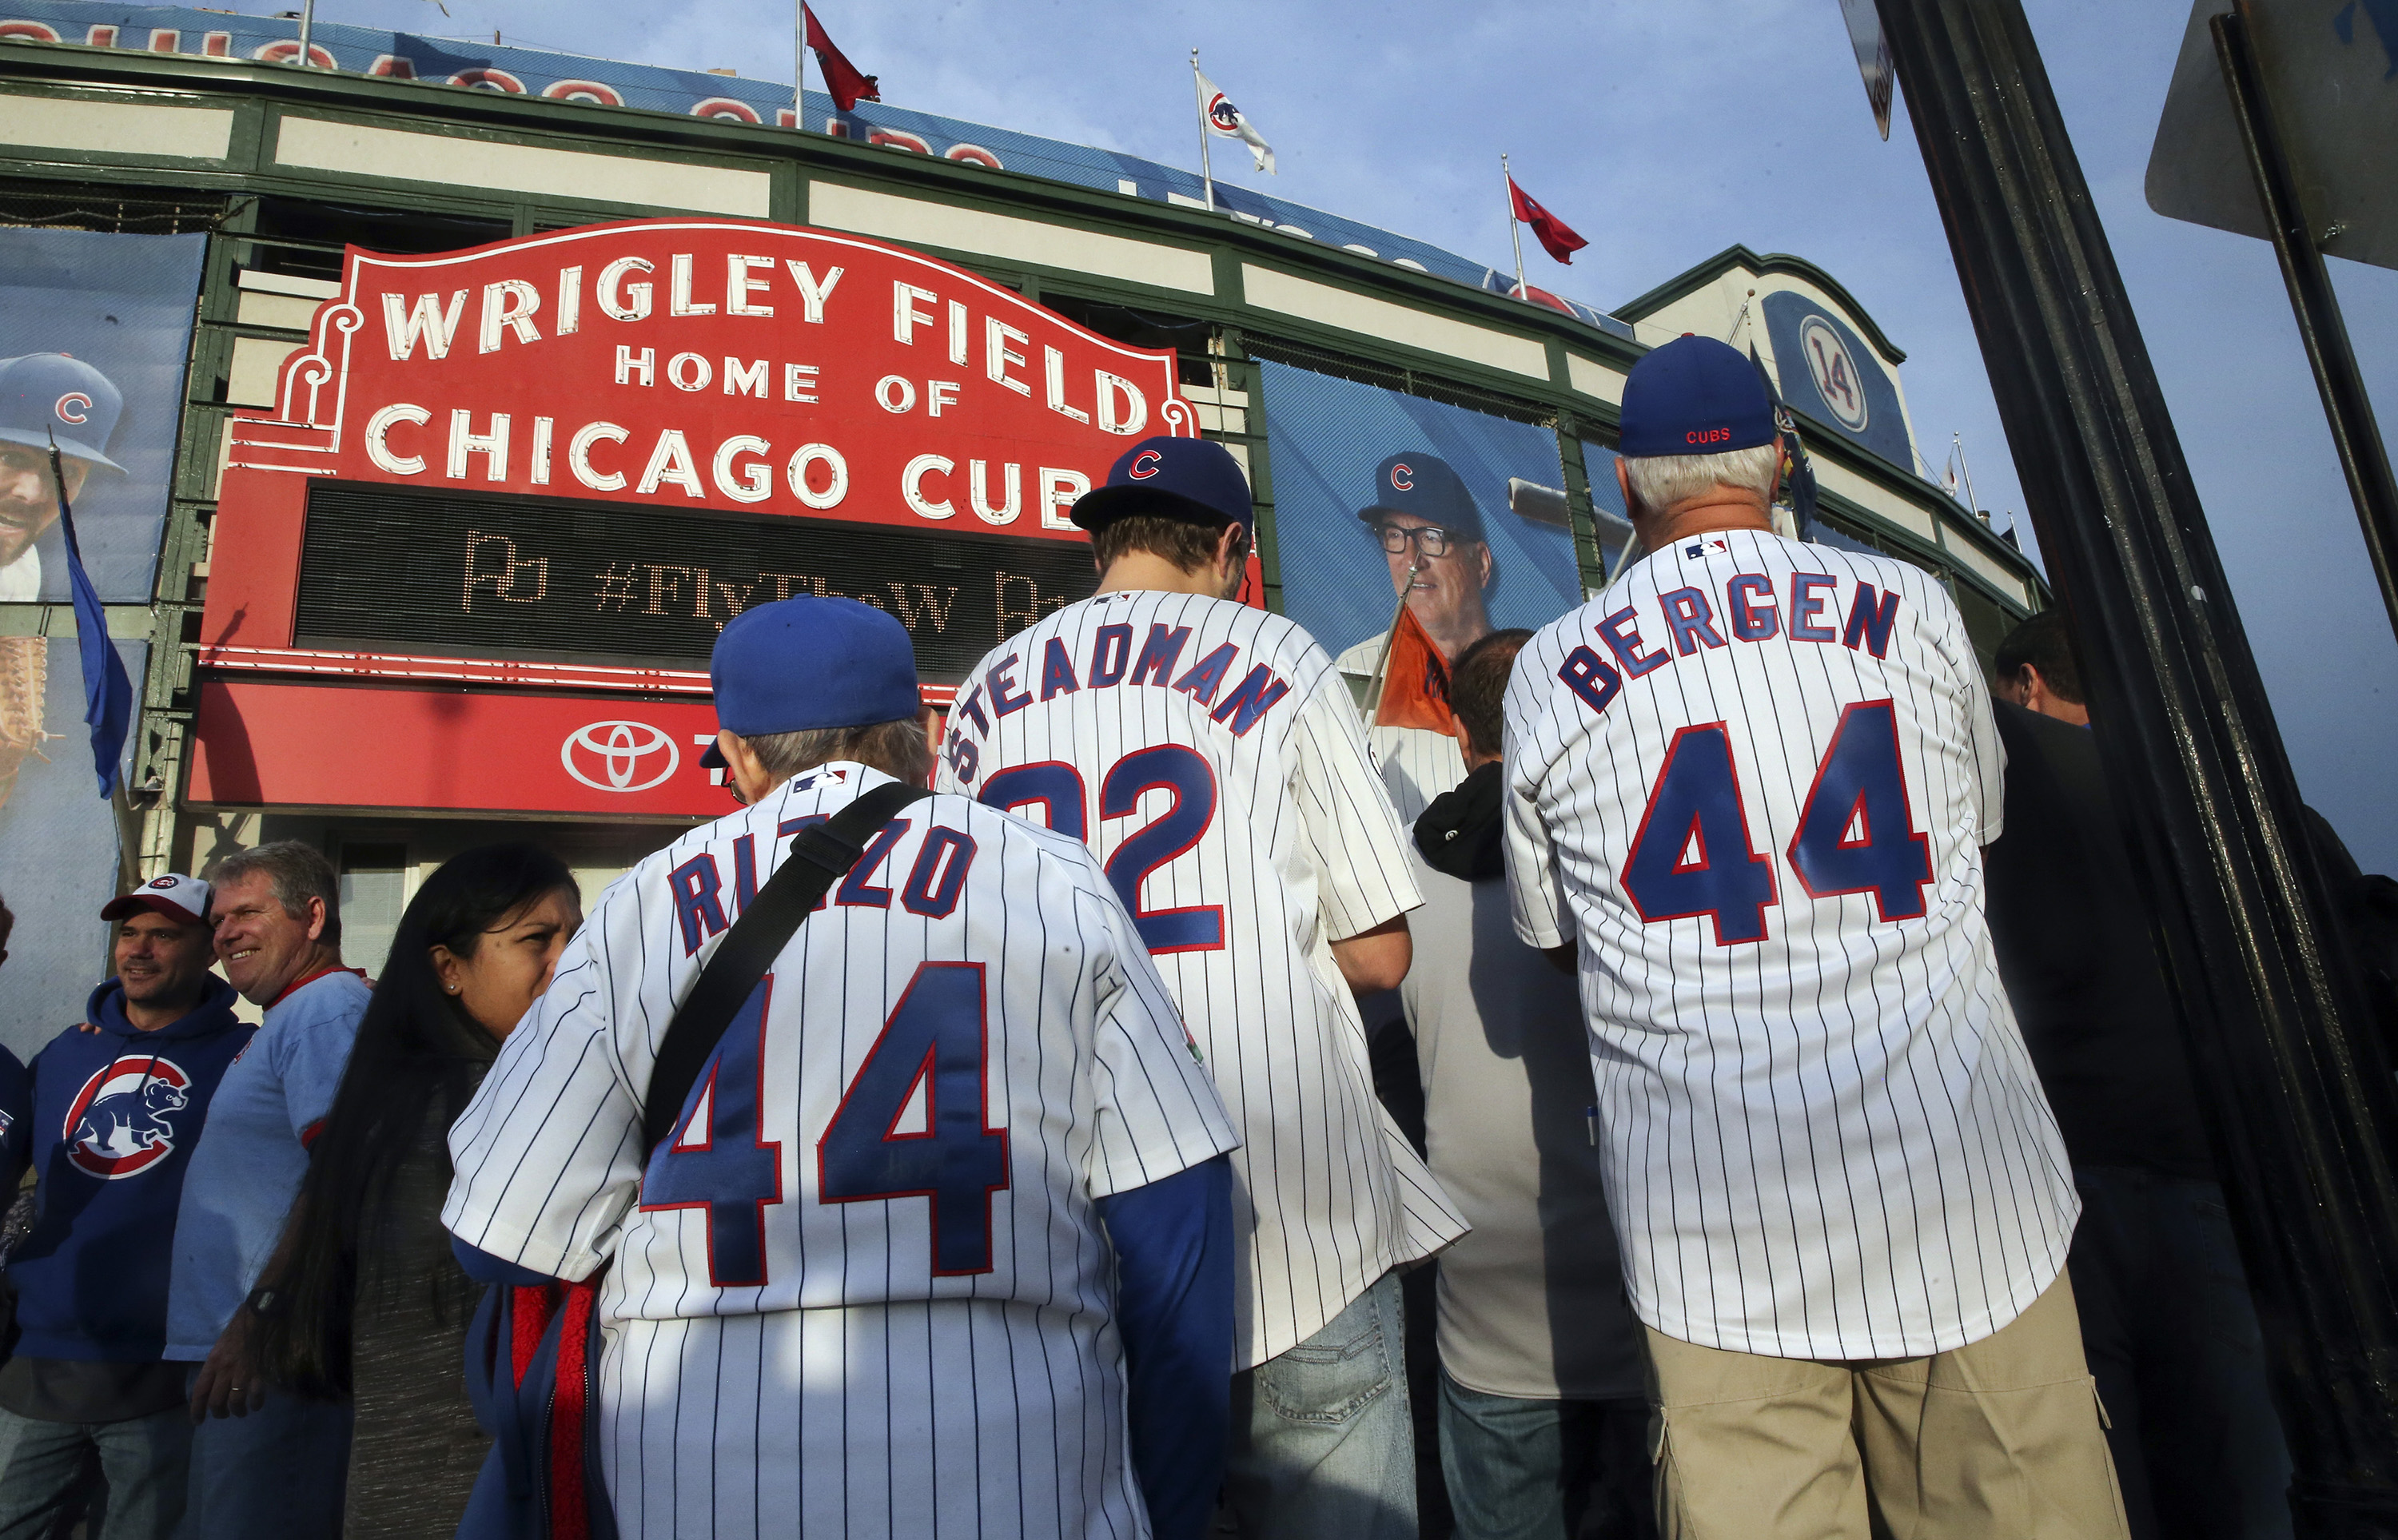 Fans arrive for Game 4 of the NLCS as the Chicago Cubs play host to the New York Mets on Wednesday, Oct. 21, 2015, at Wrigley Field in Chicago. (Nuccio DiNuzzo/Chicago Tribune/TNS)